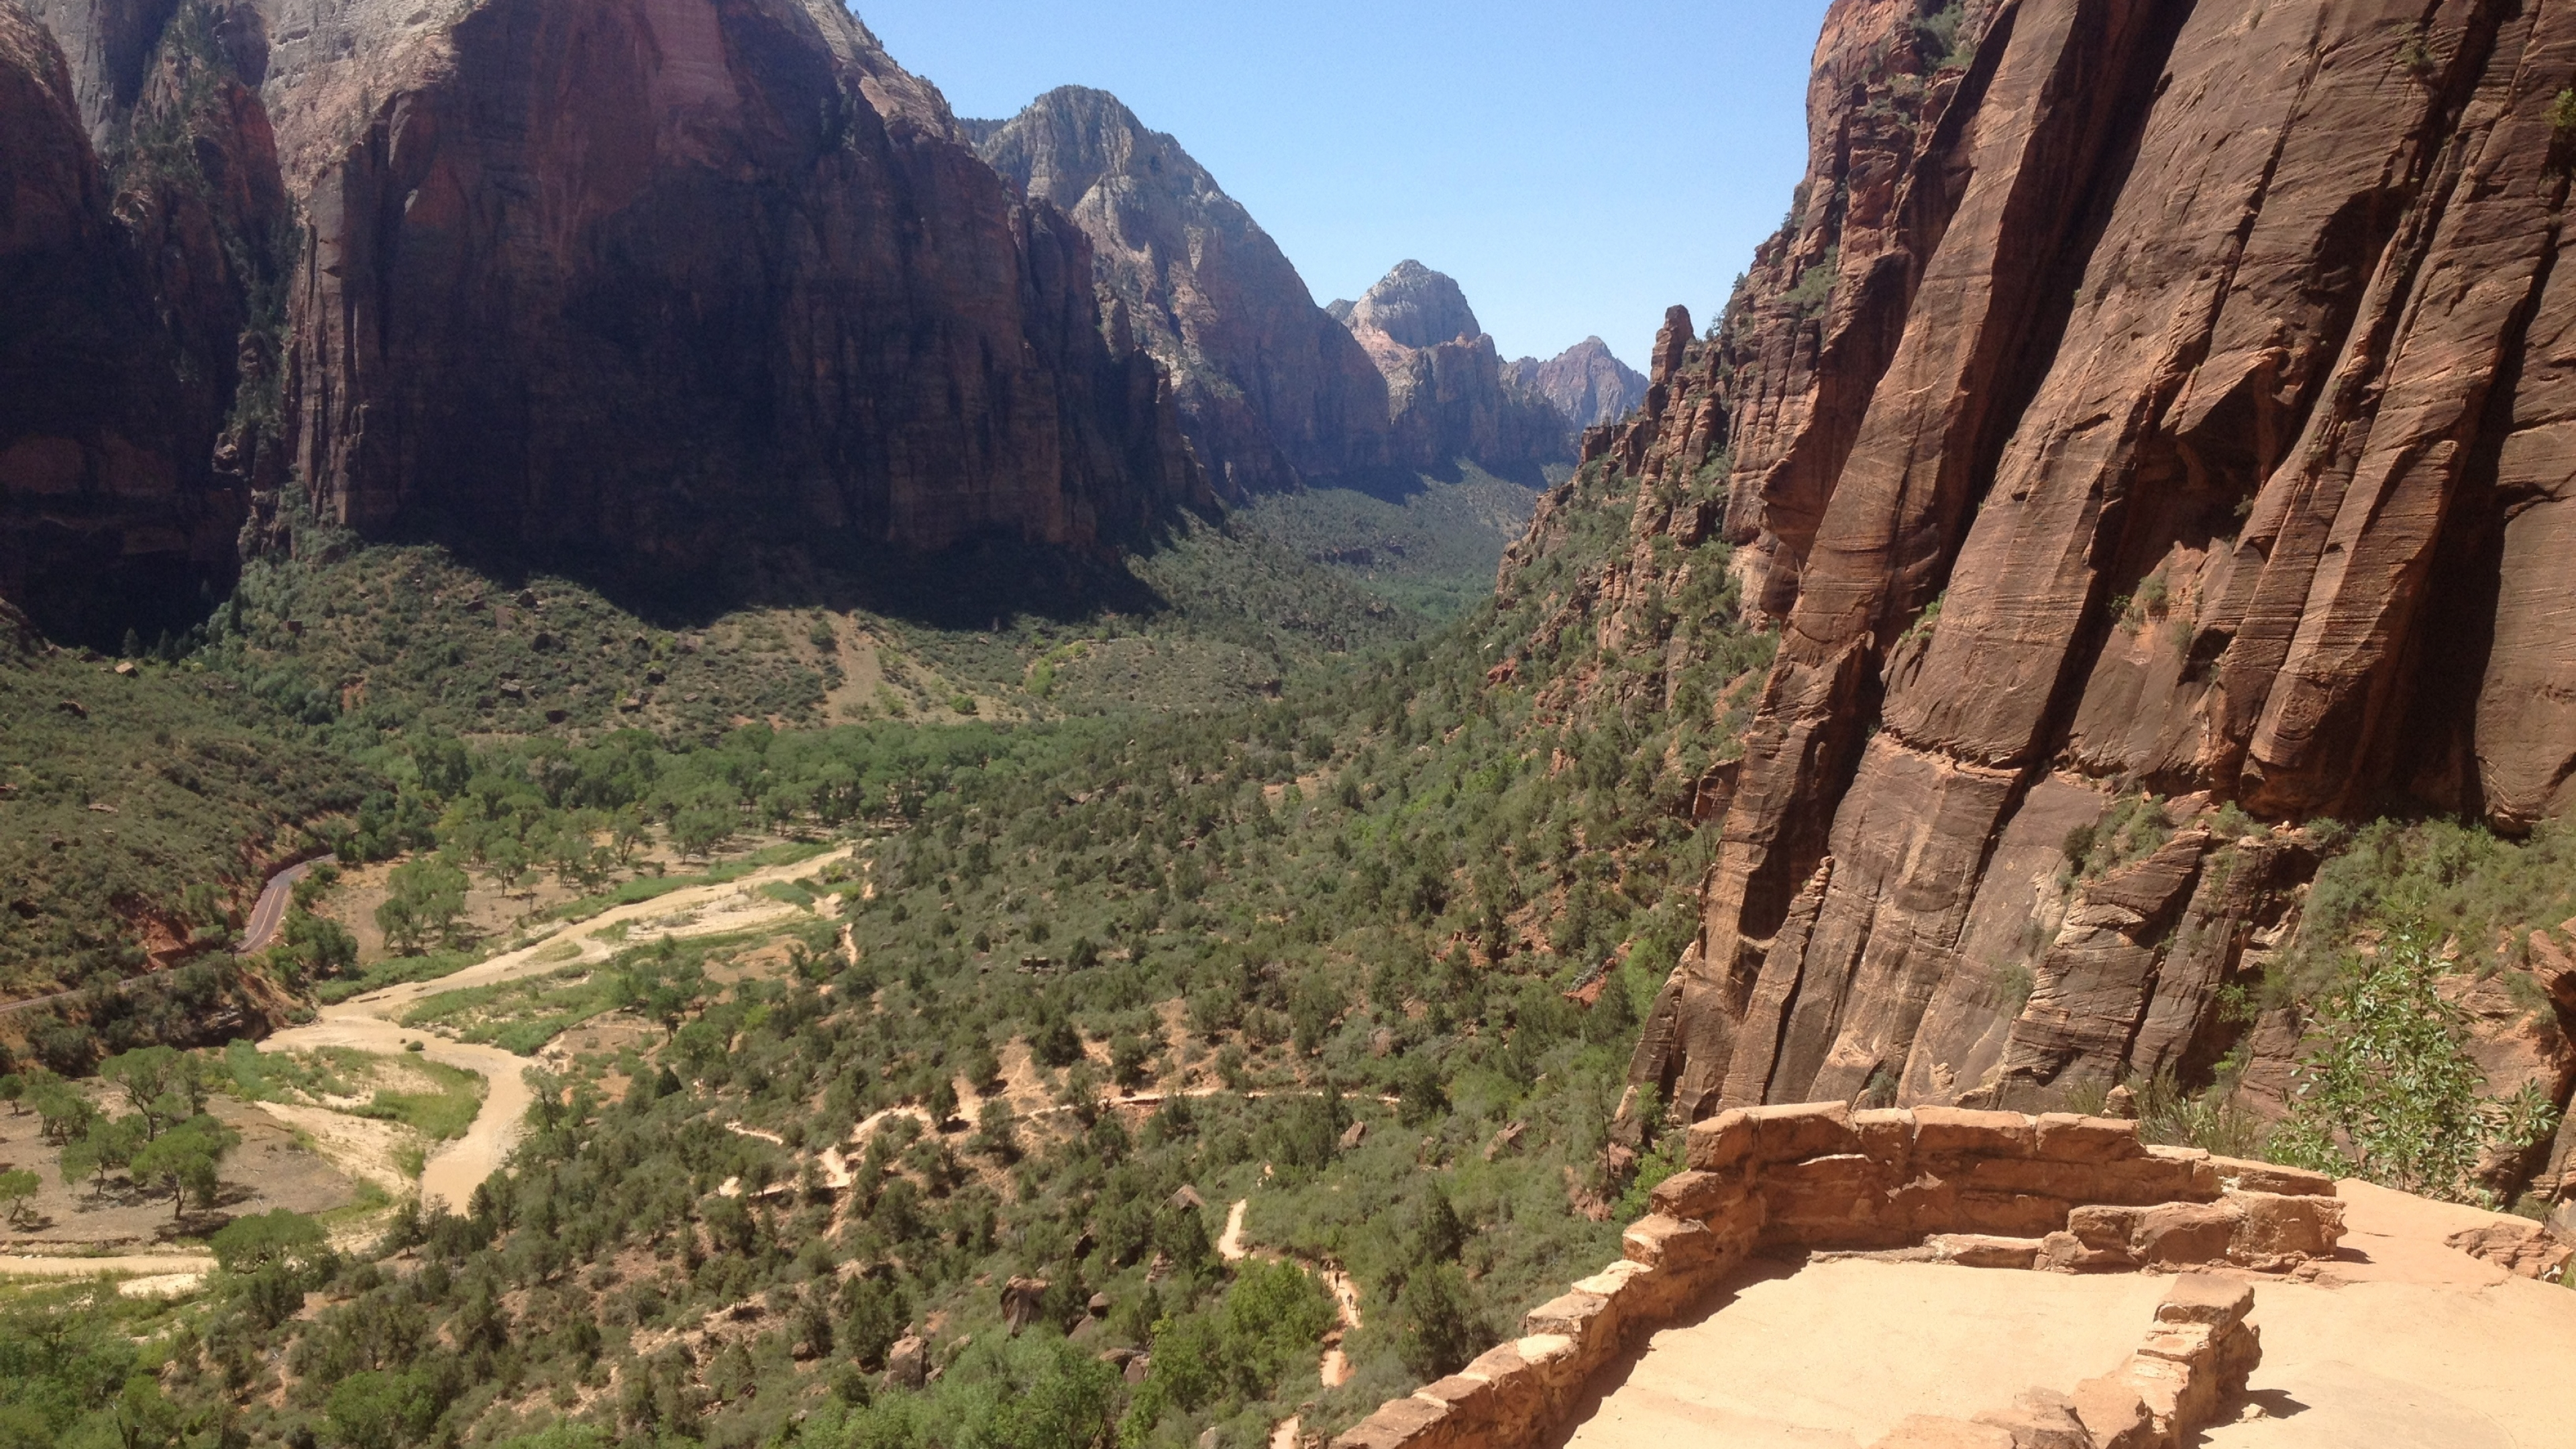 Dramatic view of Zion Canyon from part way up the canyon walls.